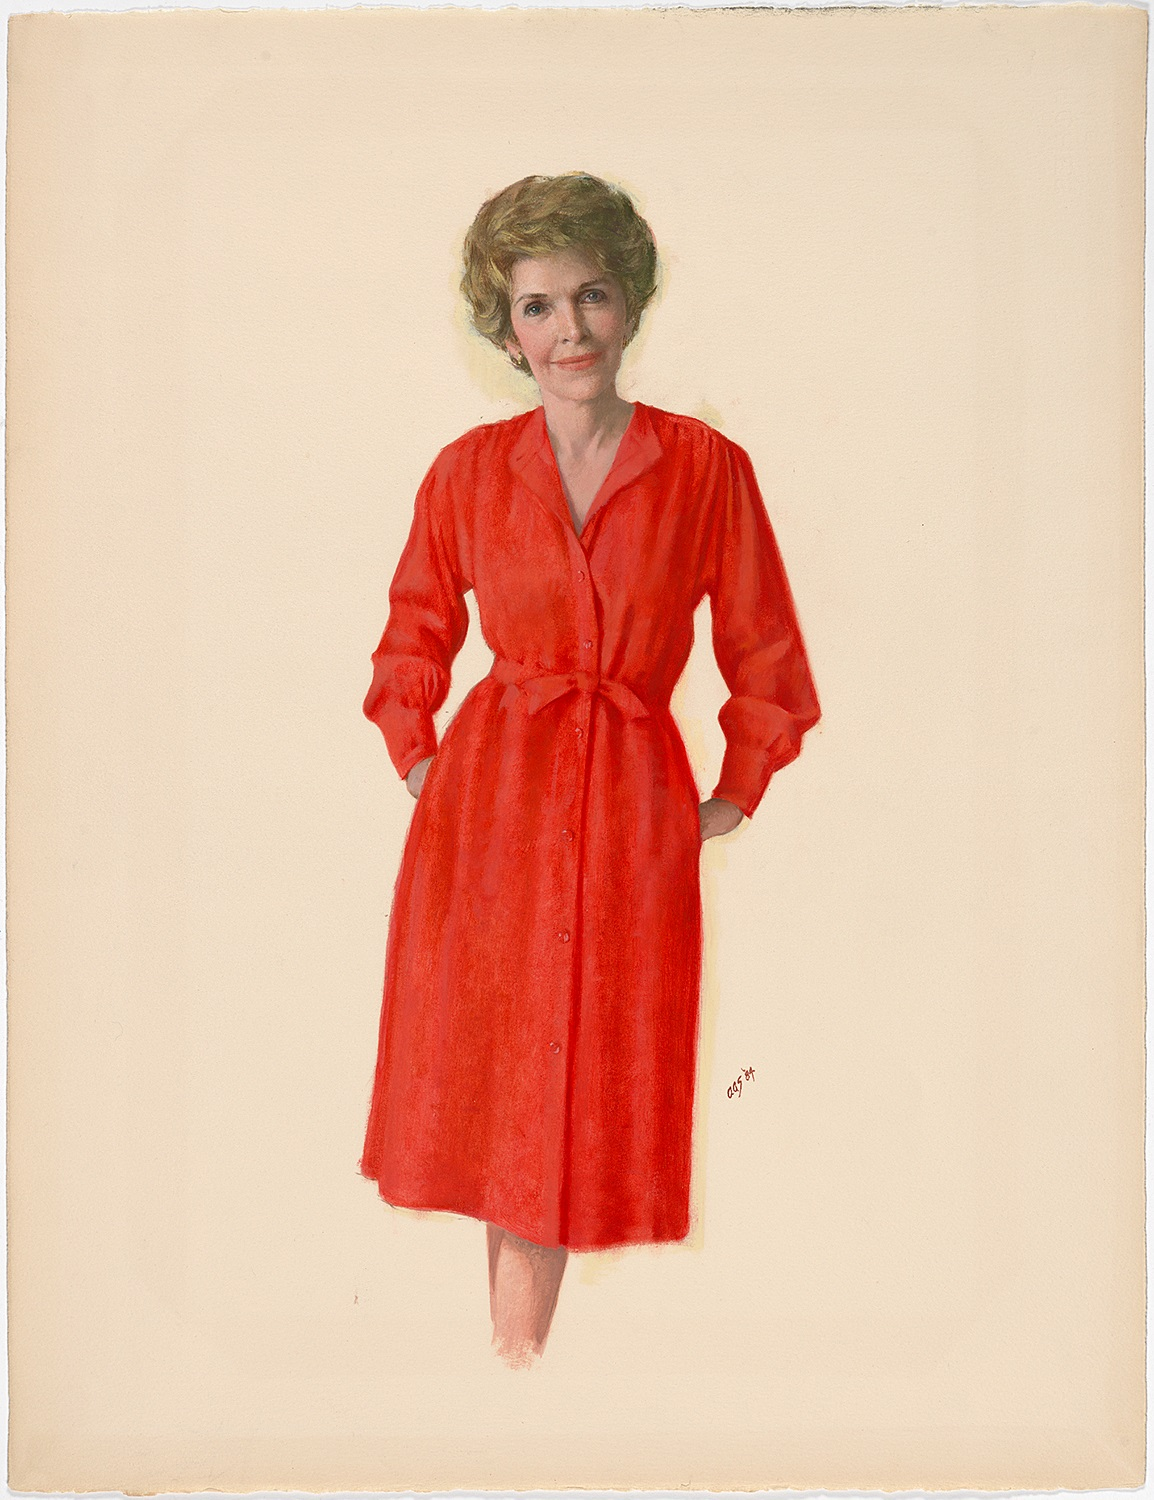 Preview image for Nancy Reagan's Portrait On View at the National Portrait Gallery press release